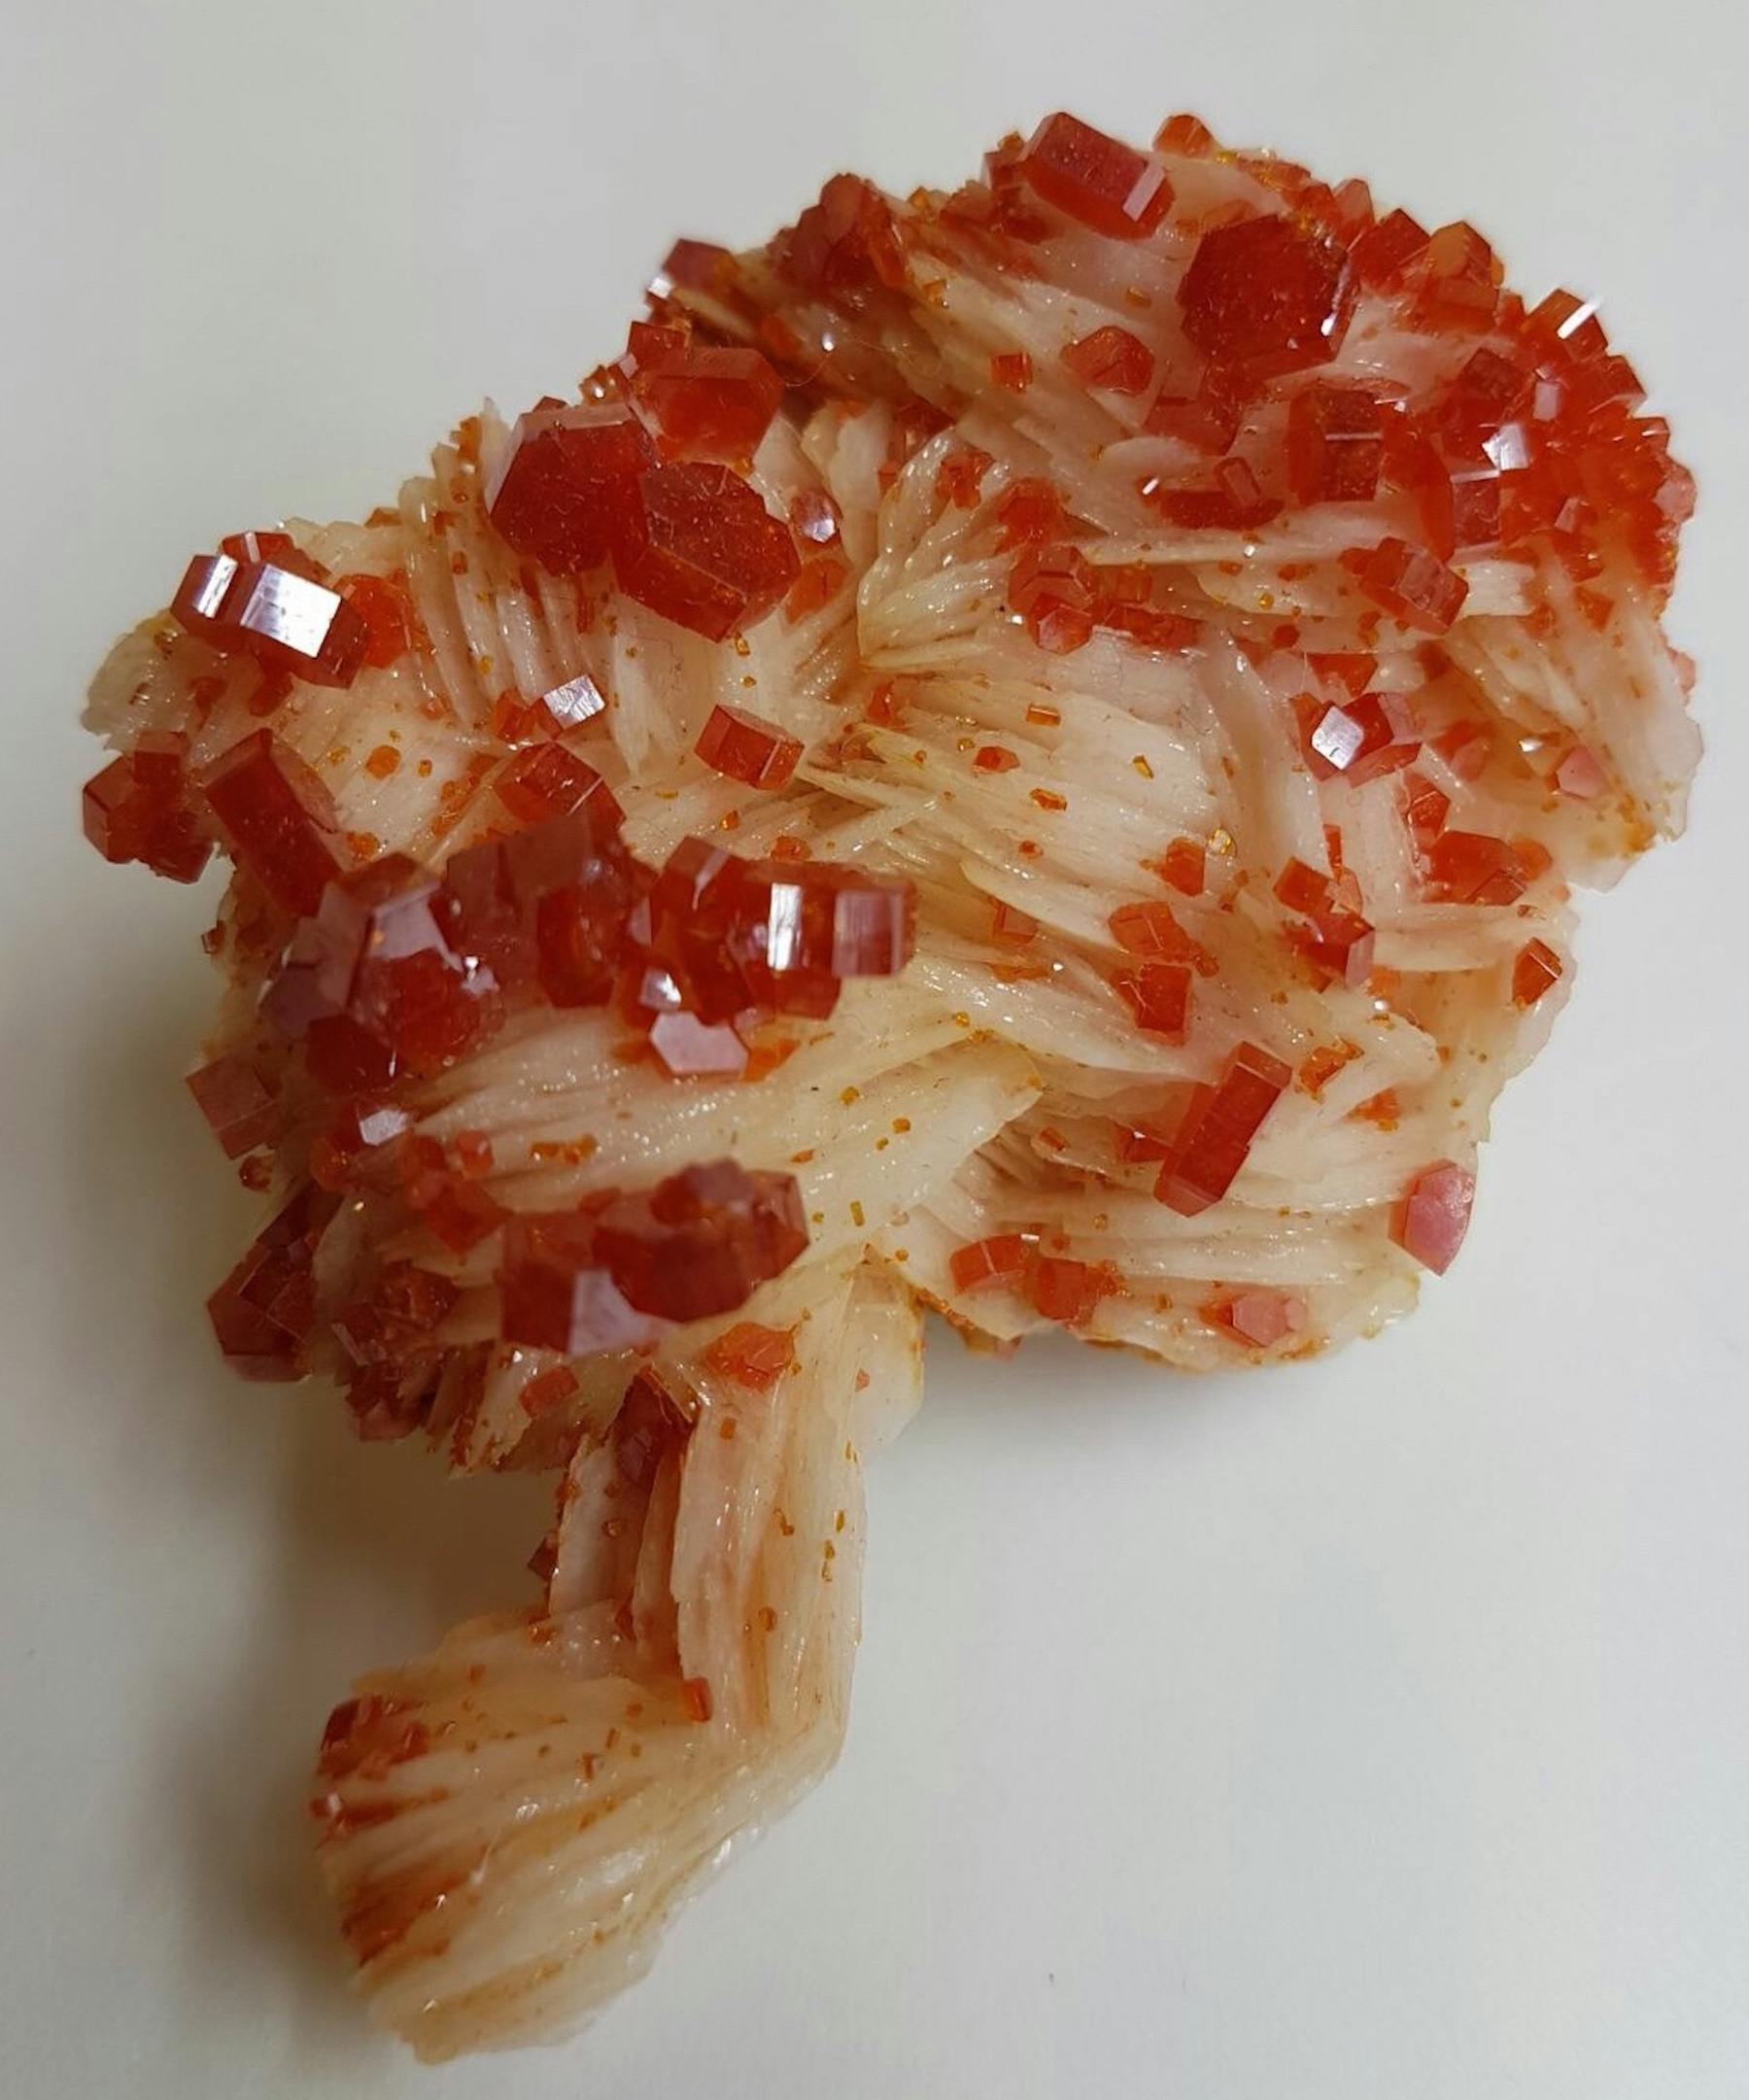 Beautiful crystals of Vanadinite on Baryte matrix.